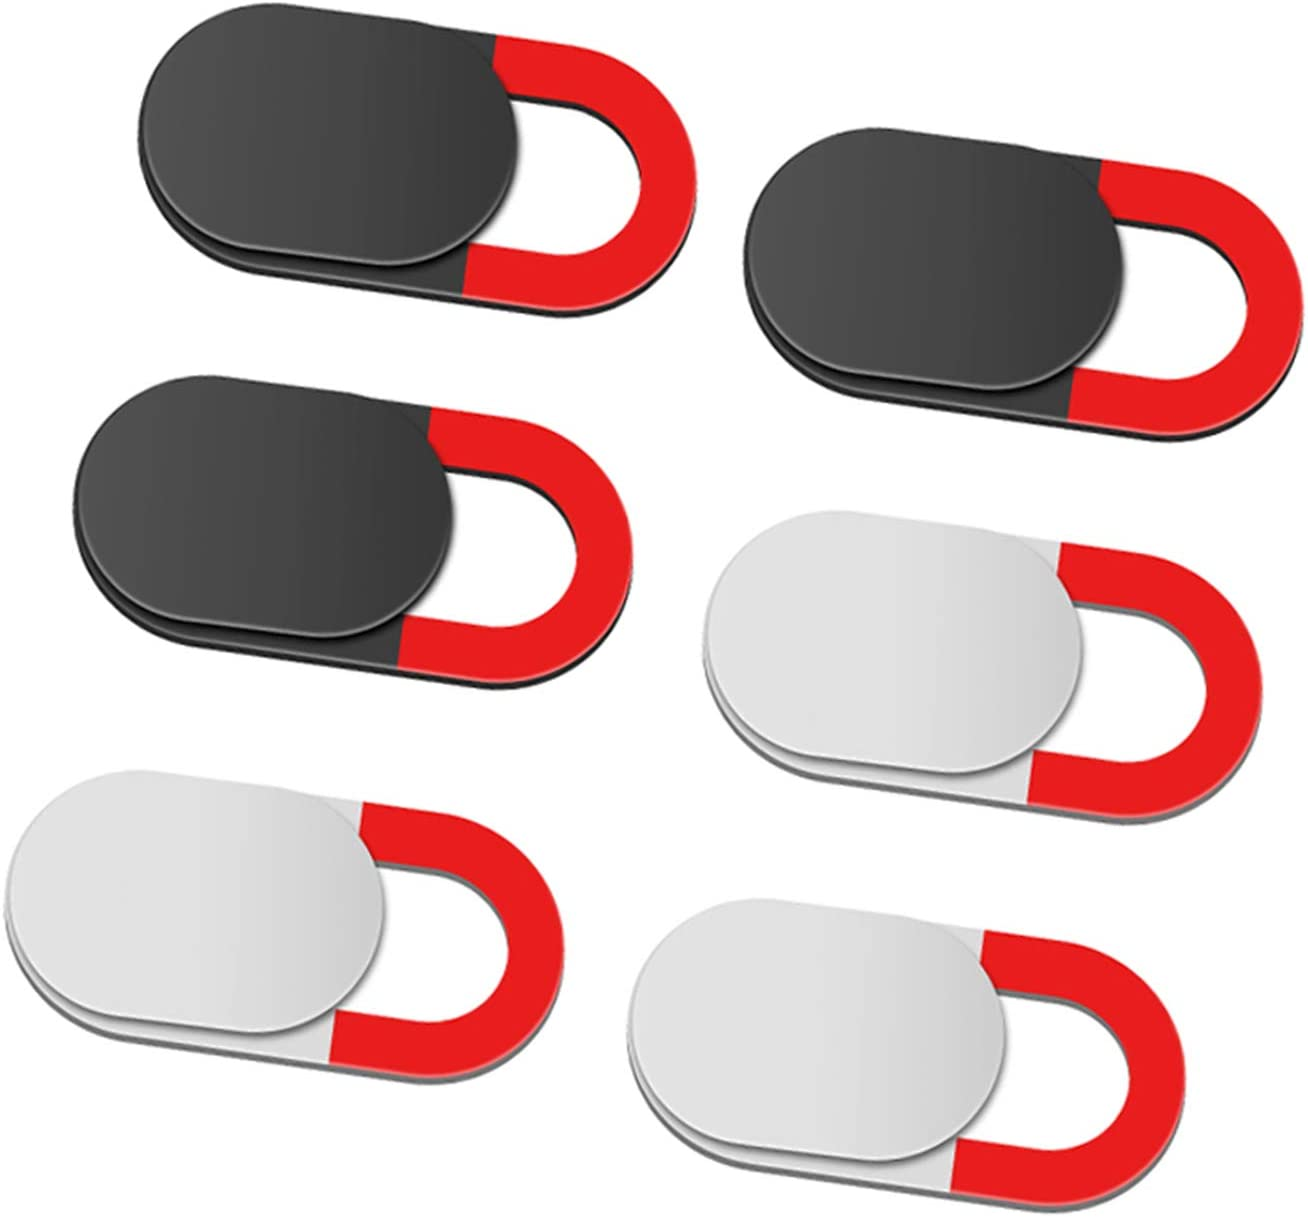 Webcam Cover Slide, 6-Pack Laptop Camera Cover,0.027 inch Ultra-Thin for Computer,Laptop, Mac, iPad, iPhone, Tablets, Smartphone,Protecting Privacy and Securtiy,Anti-Spy (Red)